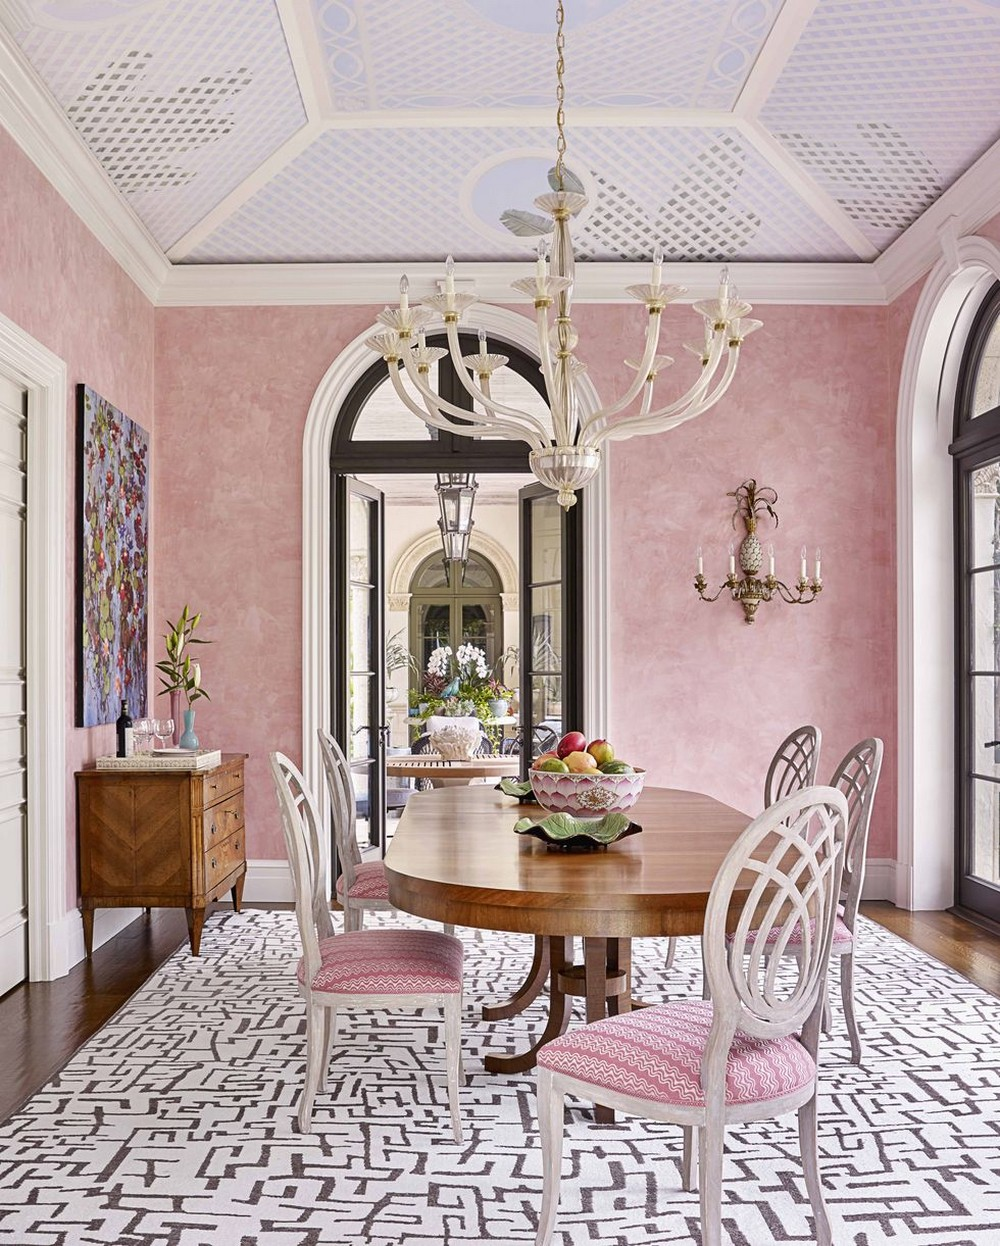 9 Designer Dining Room Ideas that Will Call for a Home Remodel 2 dining room ideas 9 Designer Dining Room Ideas that Will Call for a Home Renovation 9 Designer Dining Room Ideas that Will Call for a Home Remodel 2